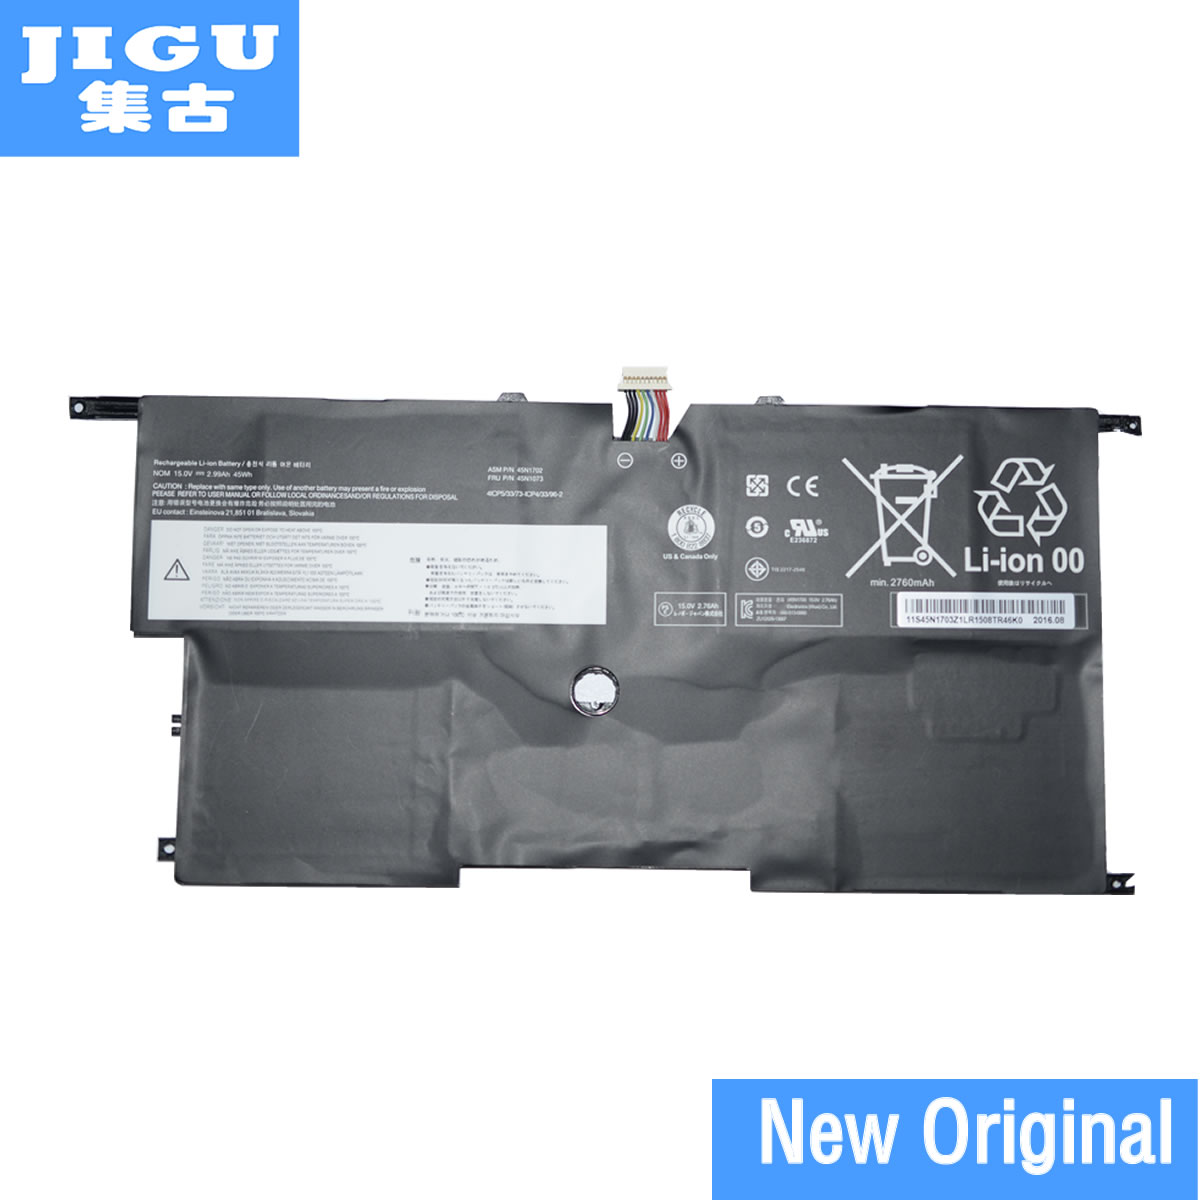 JIGU Original Laptop Battery 45N1702 45N1703 FOR LENOVO For ThinkPad X1 Carbon new original cp1l l20dt d plc cpu 24dc input 12 point transistor output 8 point